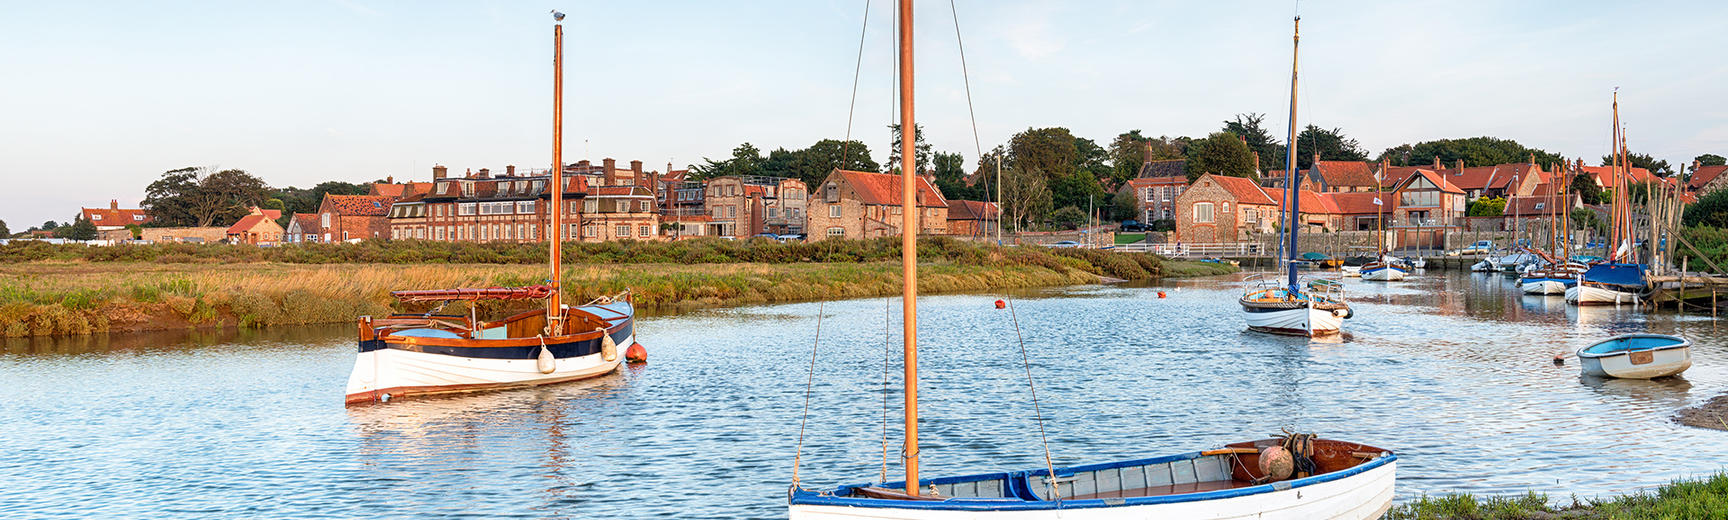 High tide on the salt marshes at Blakeney on the north coast of Norfolk